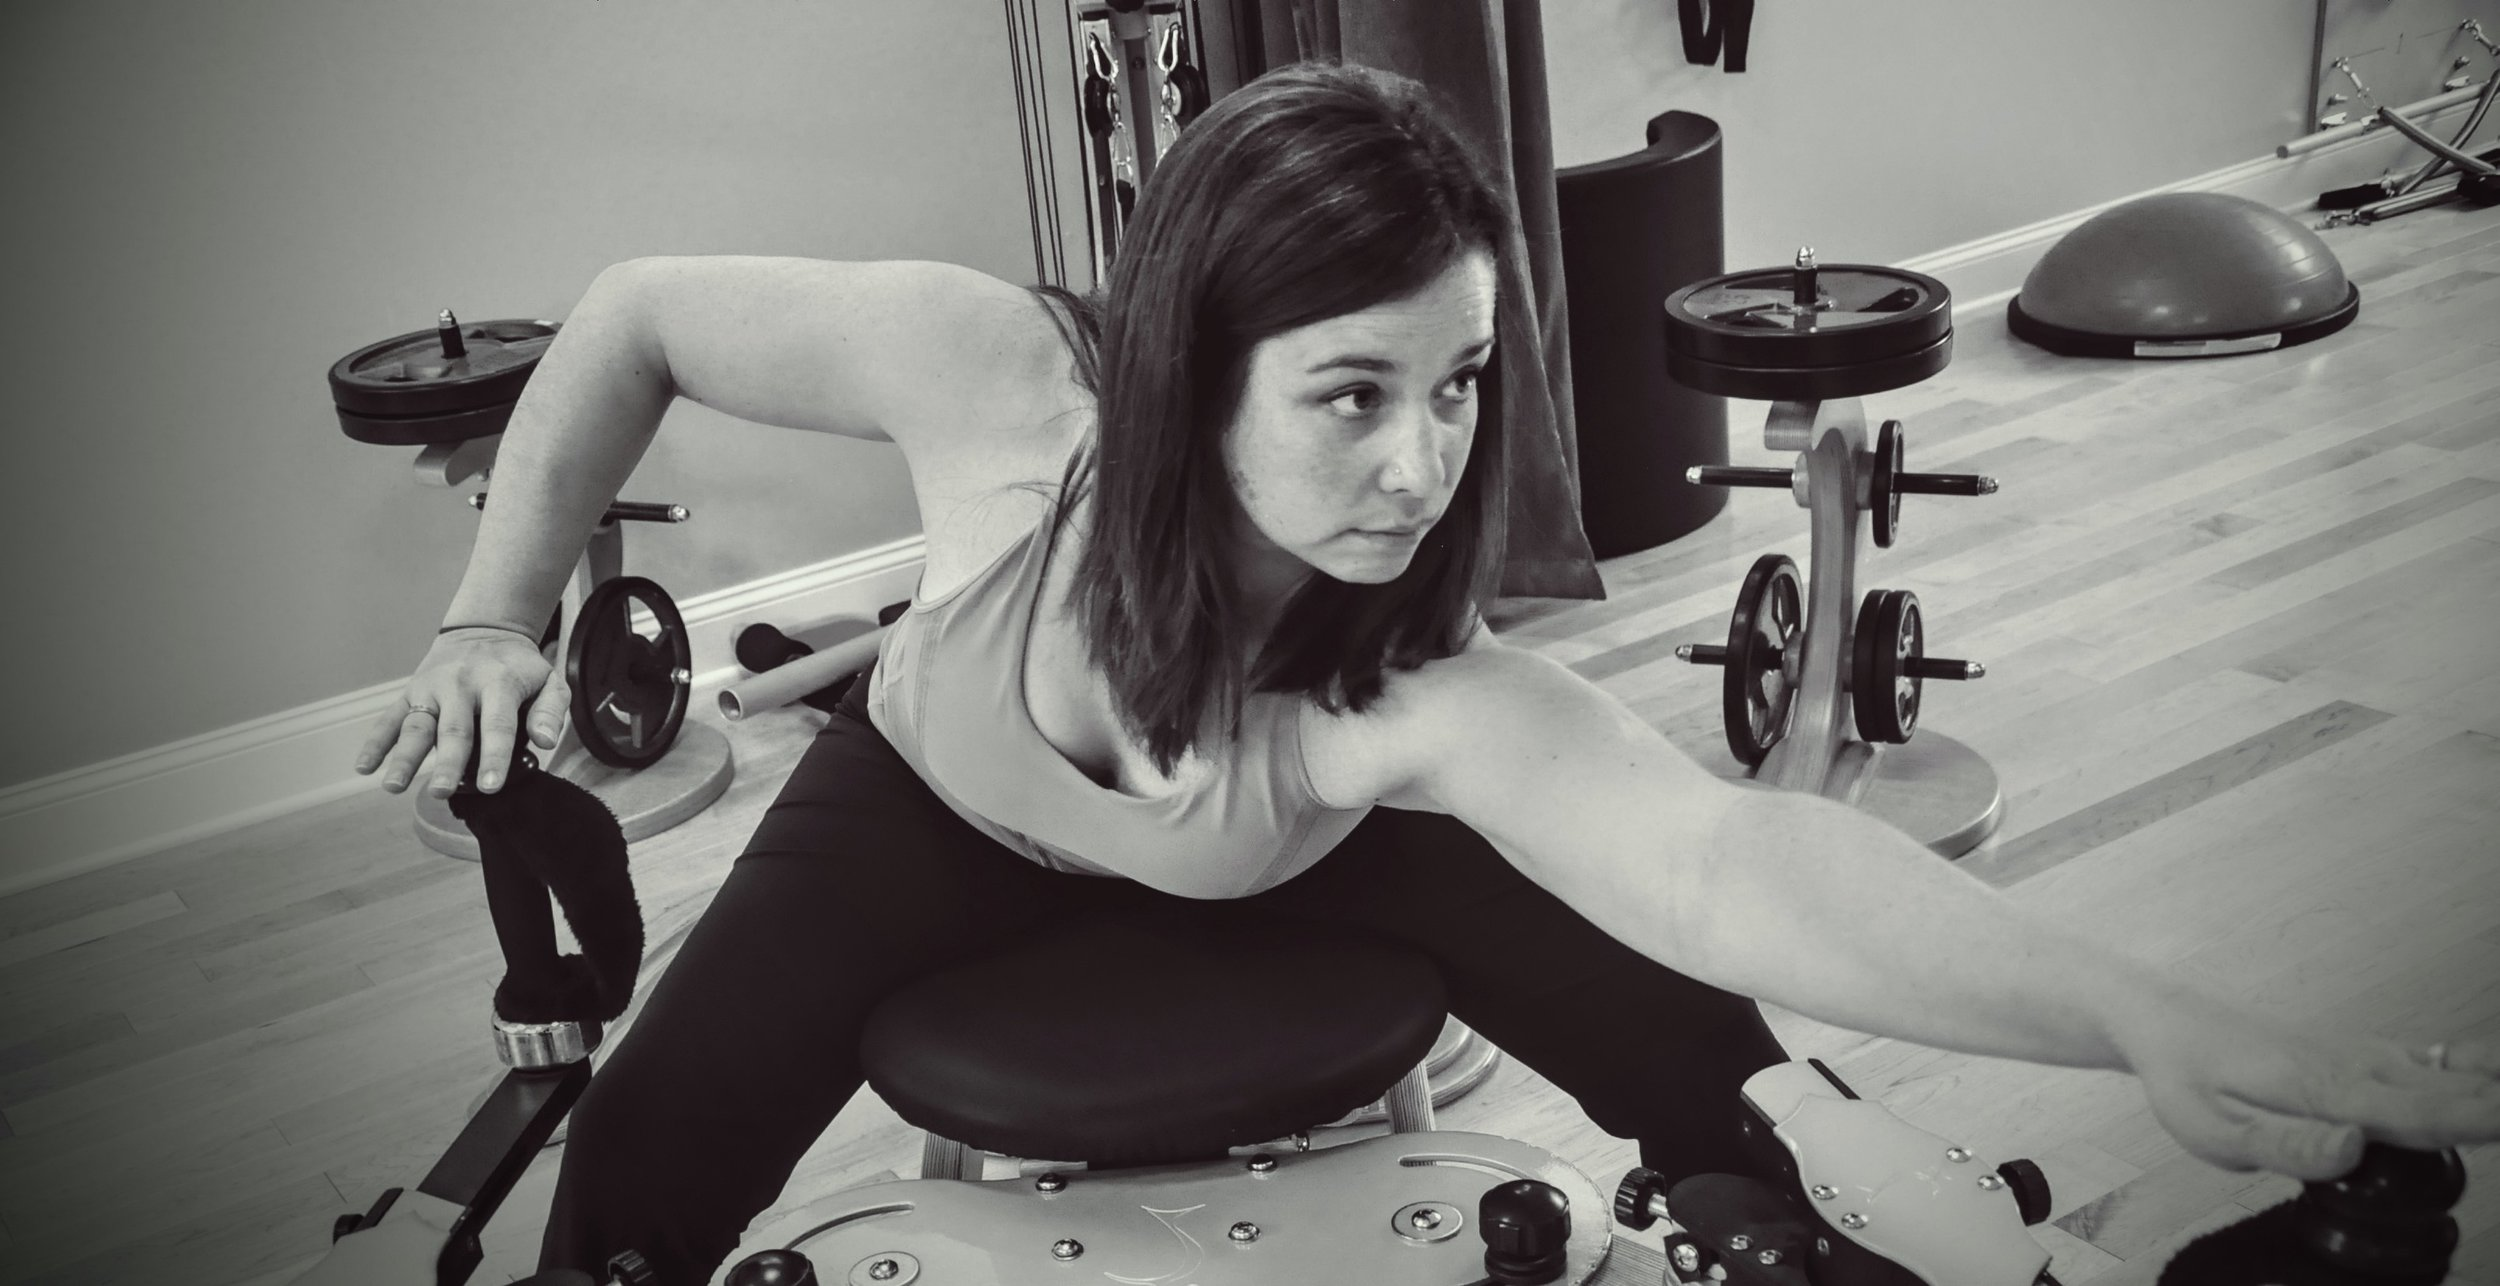 "Certified instructor, Stephanie, demonstrates an exercise on the        Normal.dotm   0   0   1   2   15   Laura Amis Pilates   1   1   18   12.0                      0   false       18 pt   18 pt   0   0     false   false   false                                       /* Style Definitions */ table.MsoNormalTable 	{mso-style-name:""Table Normal""; 	mso-tstyle-rowband-size:0; 	mso-tstyle-colband-size:0; 	mso-style-noshow:yes; 	mso-style-parent:""""; 	mso-padding-alt:0in 5.4pt 0in 5.4pt; 	mso-para-margin:0in; 	mso-para-margin-bottom:.0001pt; 	mso-pagination:widow-orphan; 	font-size:12.0pt; 	font-family:""Times New Roman""; 	mso-ascii-font-family:Cambria; 	mso-ascii-theme-font:minor-latin; 	mso-fareast-font-family:""Times New Roman""; 	mso-fareast-theme-font:minor-fareast; 	mso-hansi-font-family:Cambria; 	mso-hansi-theme-font:minor-latin;}      GYROTONIC®  Tower."